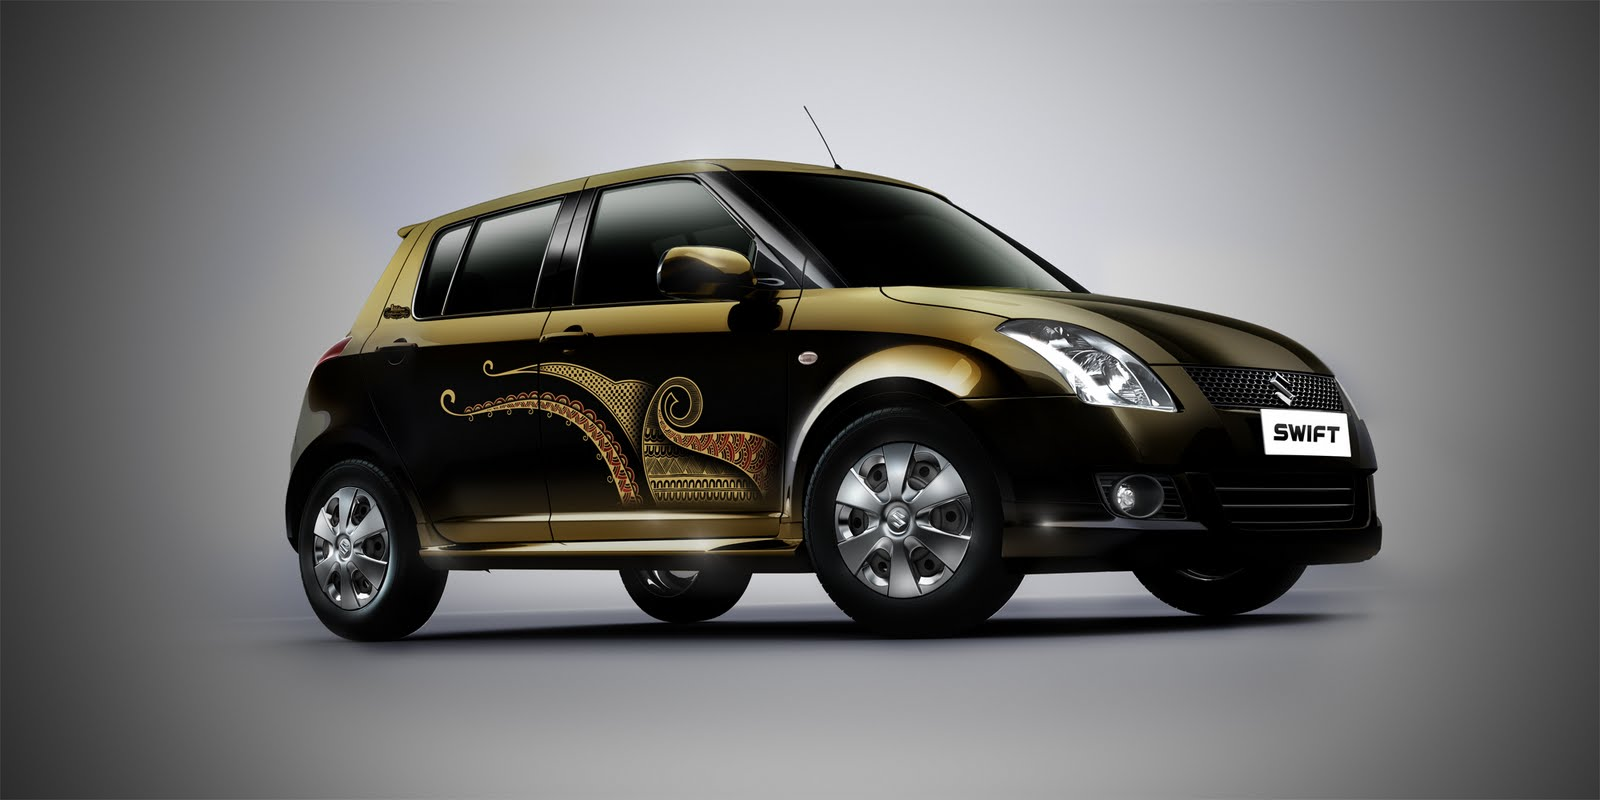 Maruti Suzuki Launched Limited Edition Swift In India Luxury Cars